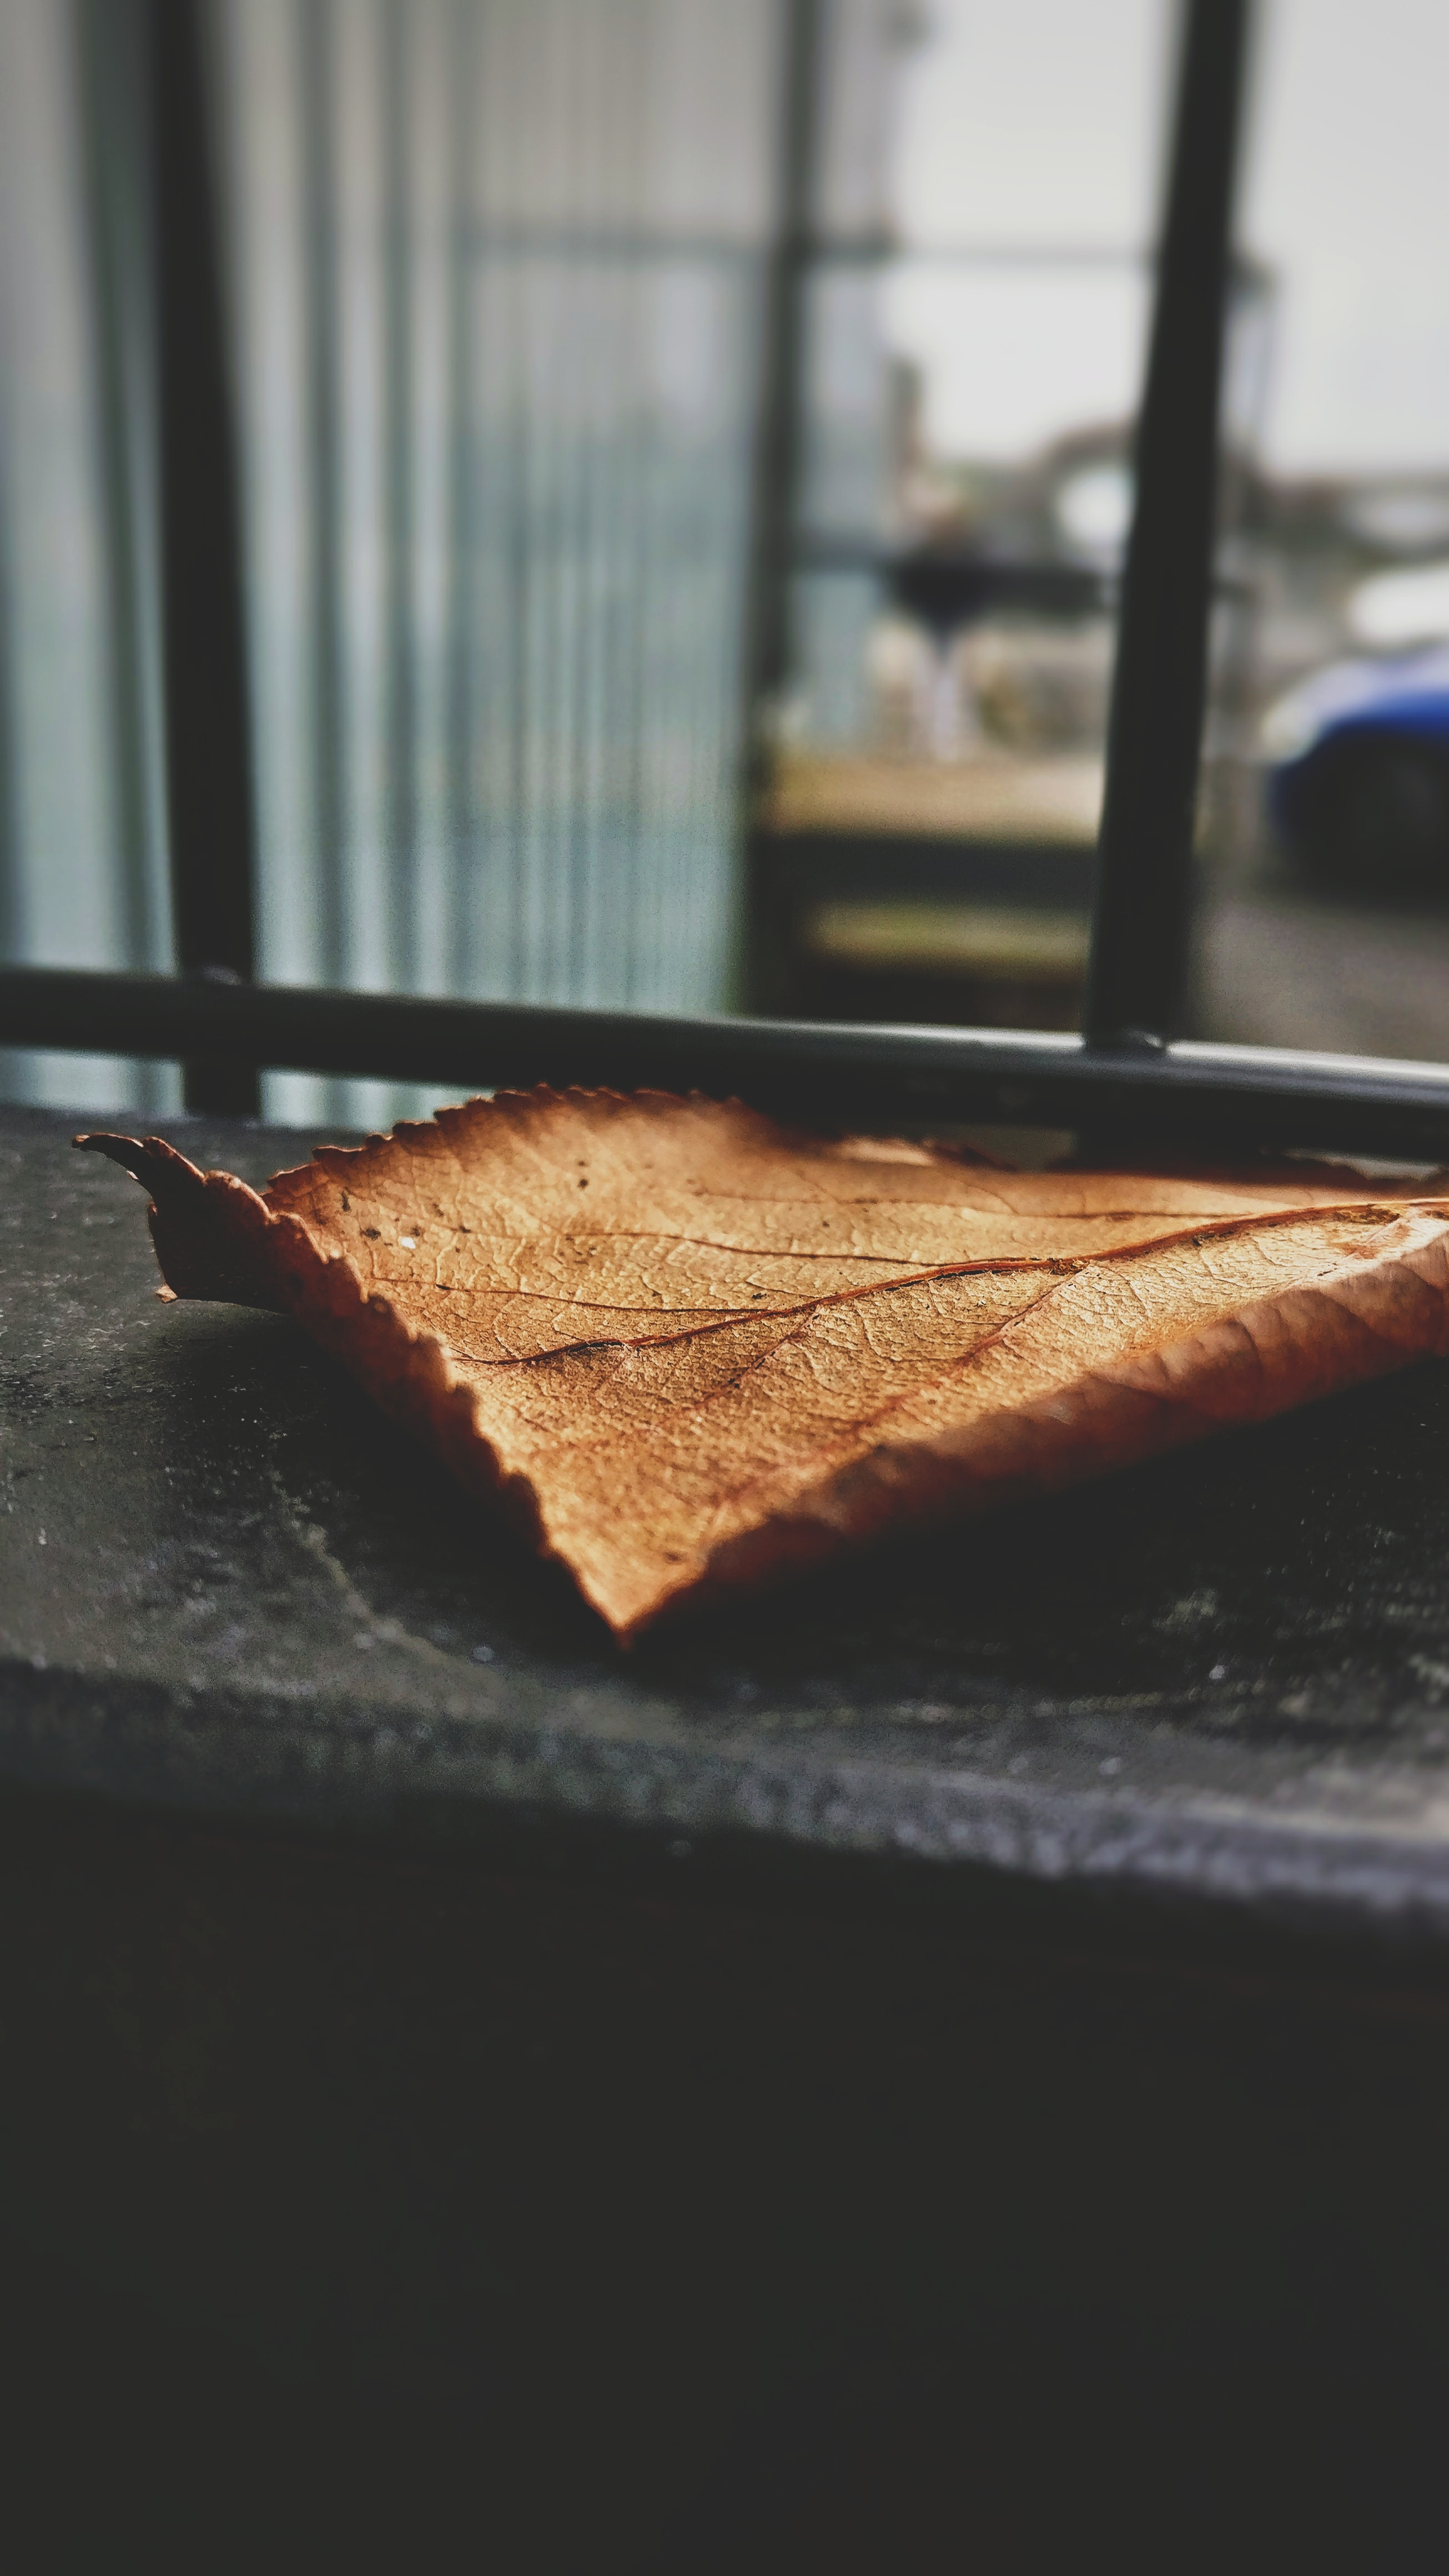 A large leaf sitting at the bottom of a window.